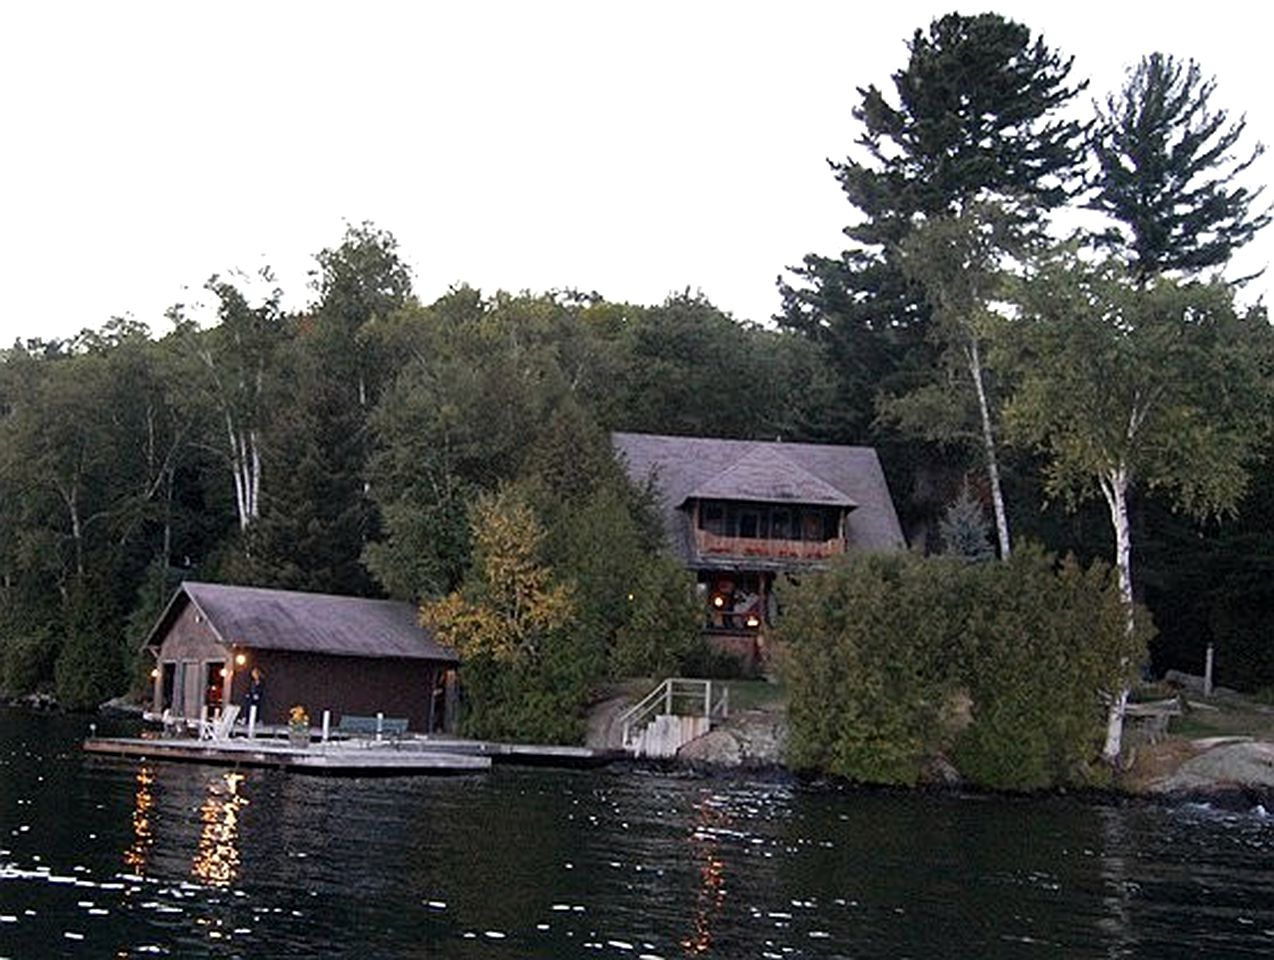 Cabins (Lake Placid, New York, United States)